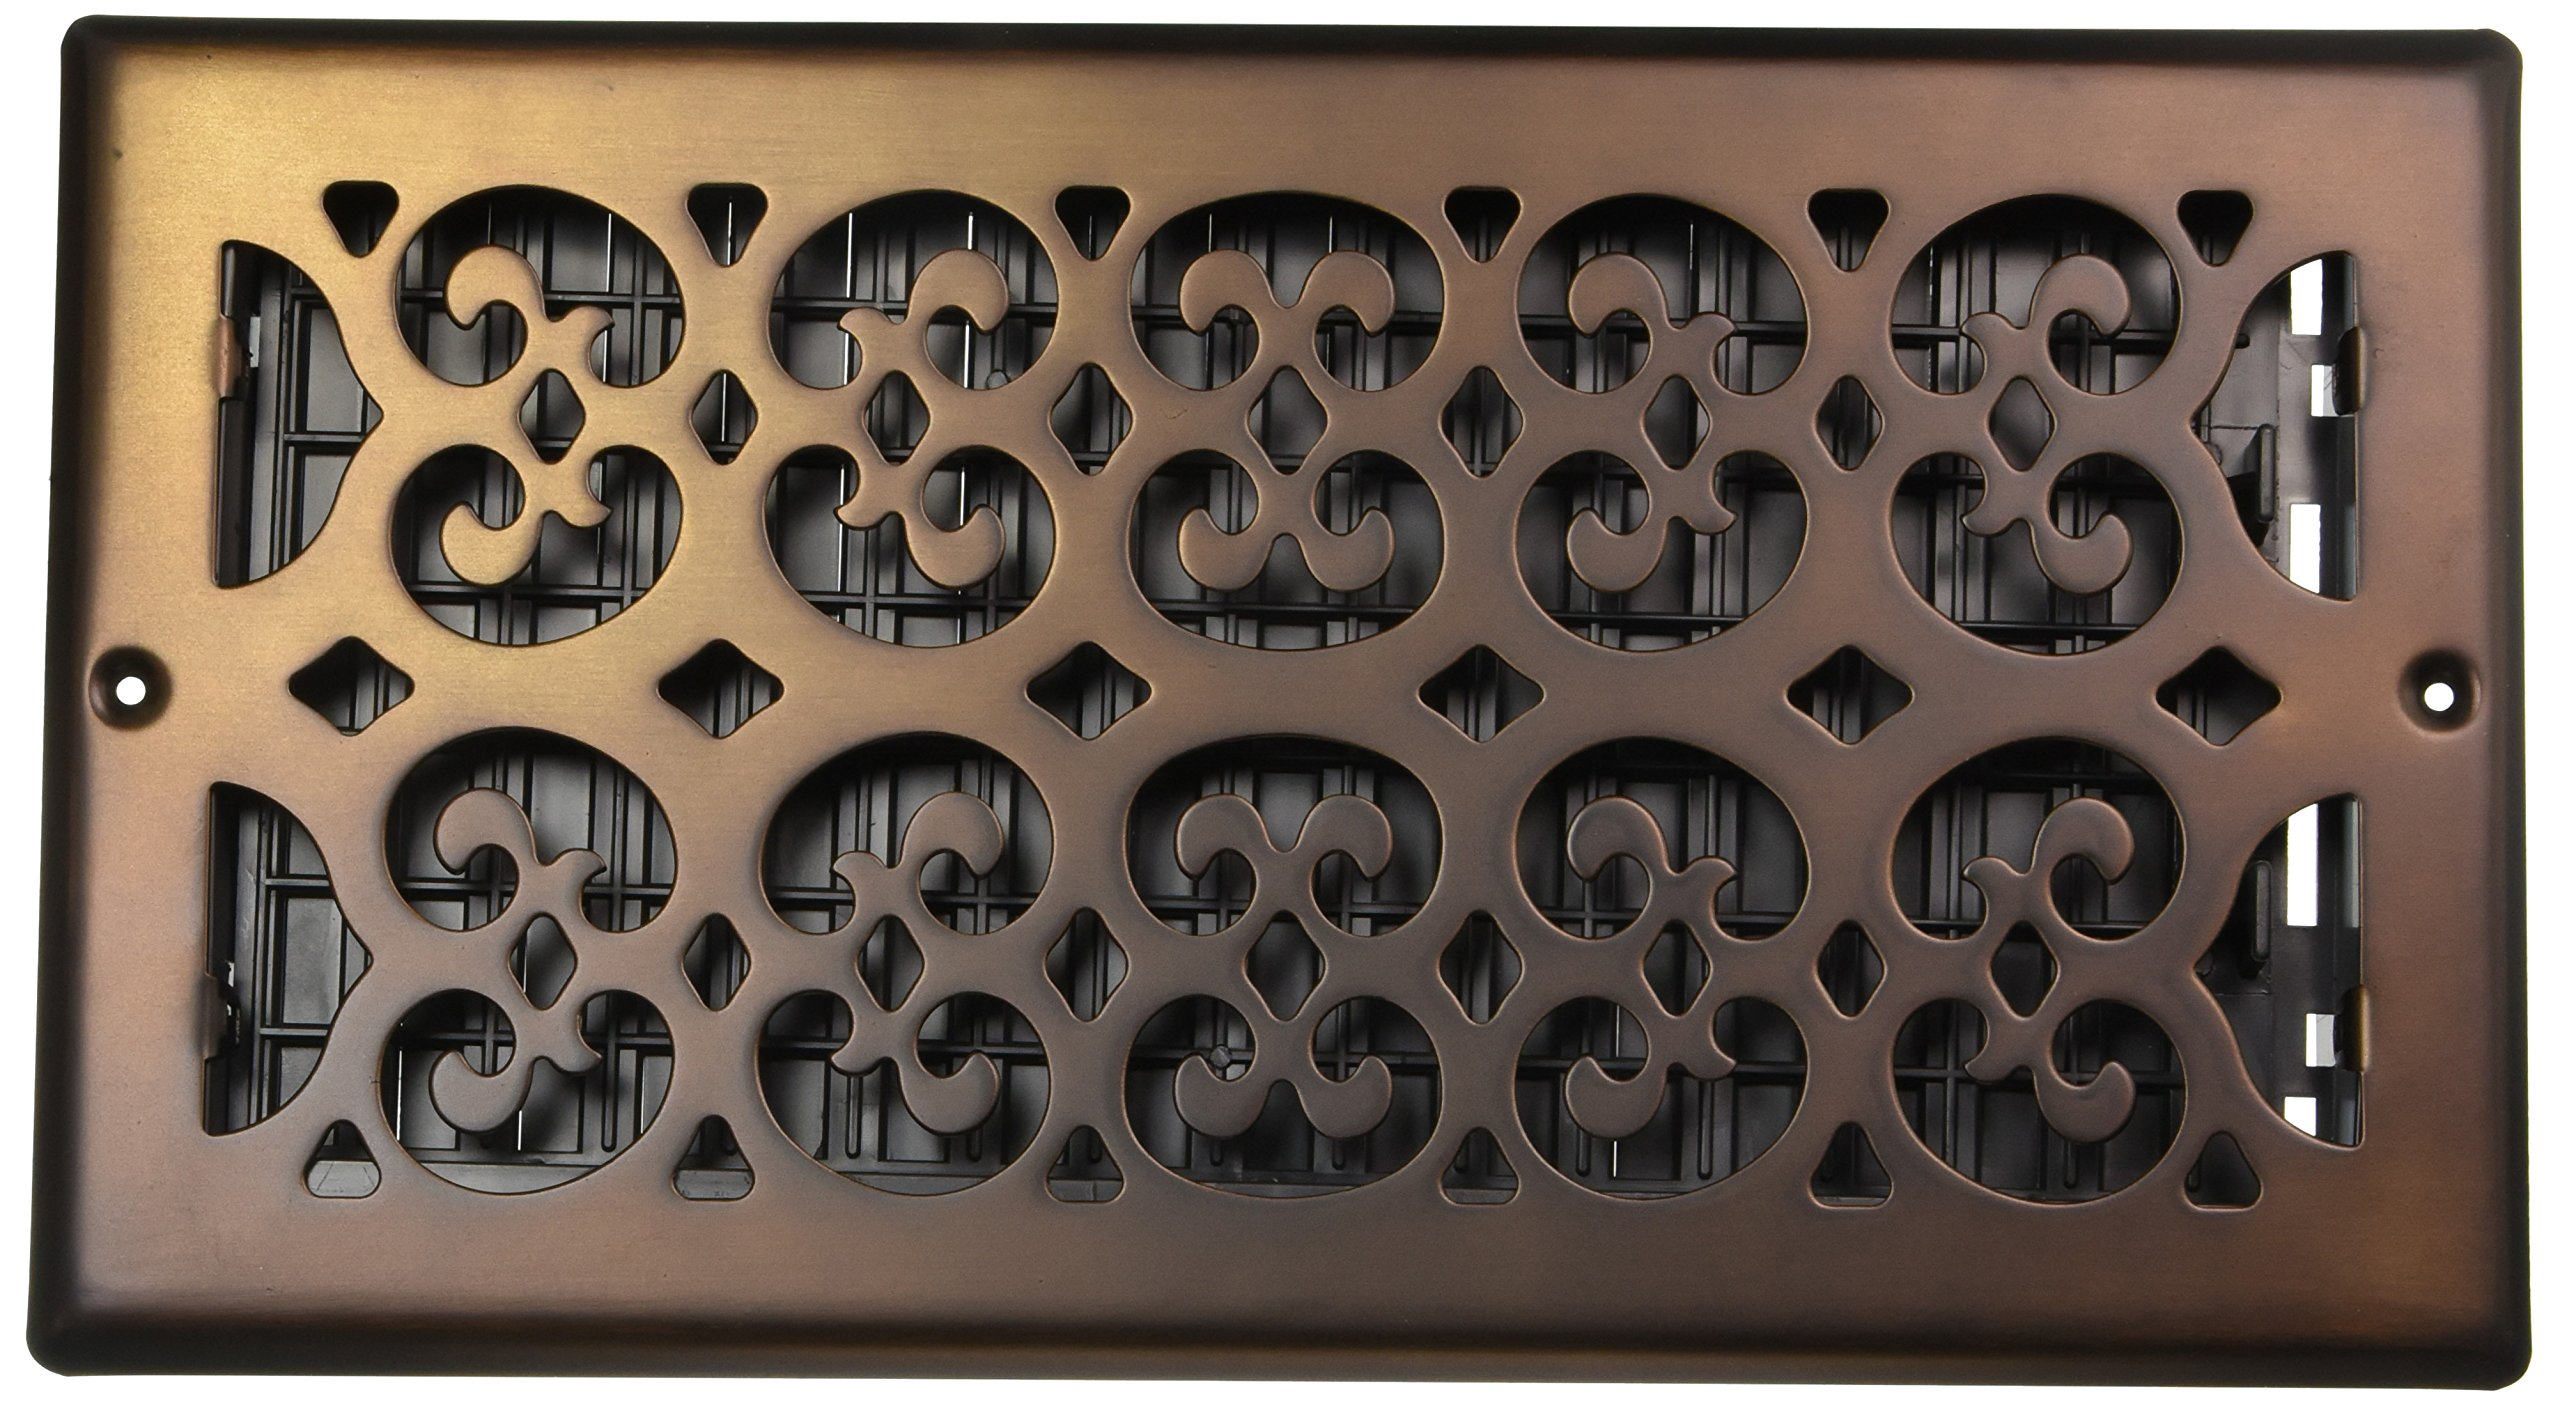 Decor Grates SP612W-RB Scroll Plated Register, 6-Inch by 12-Inch, Rubbed Bronze by Decor Grates